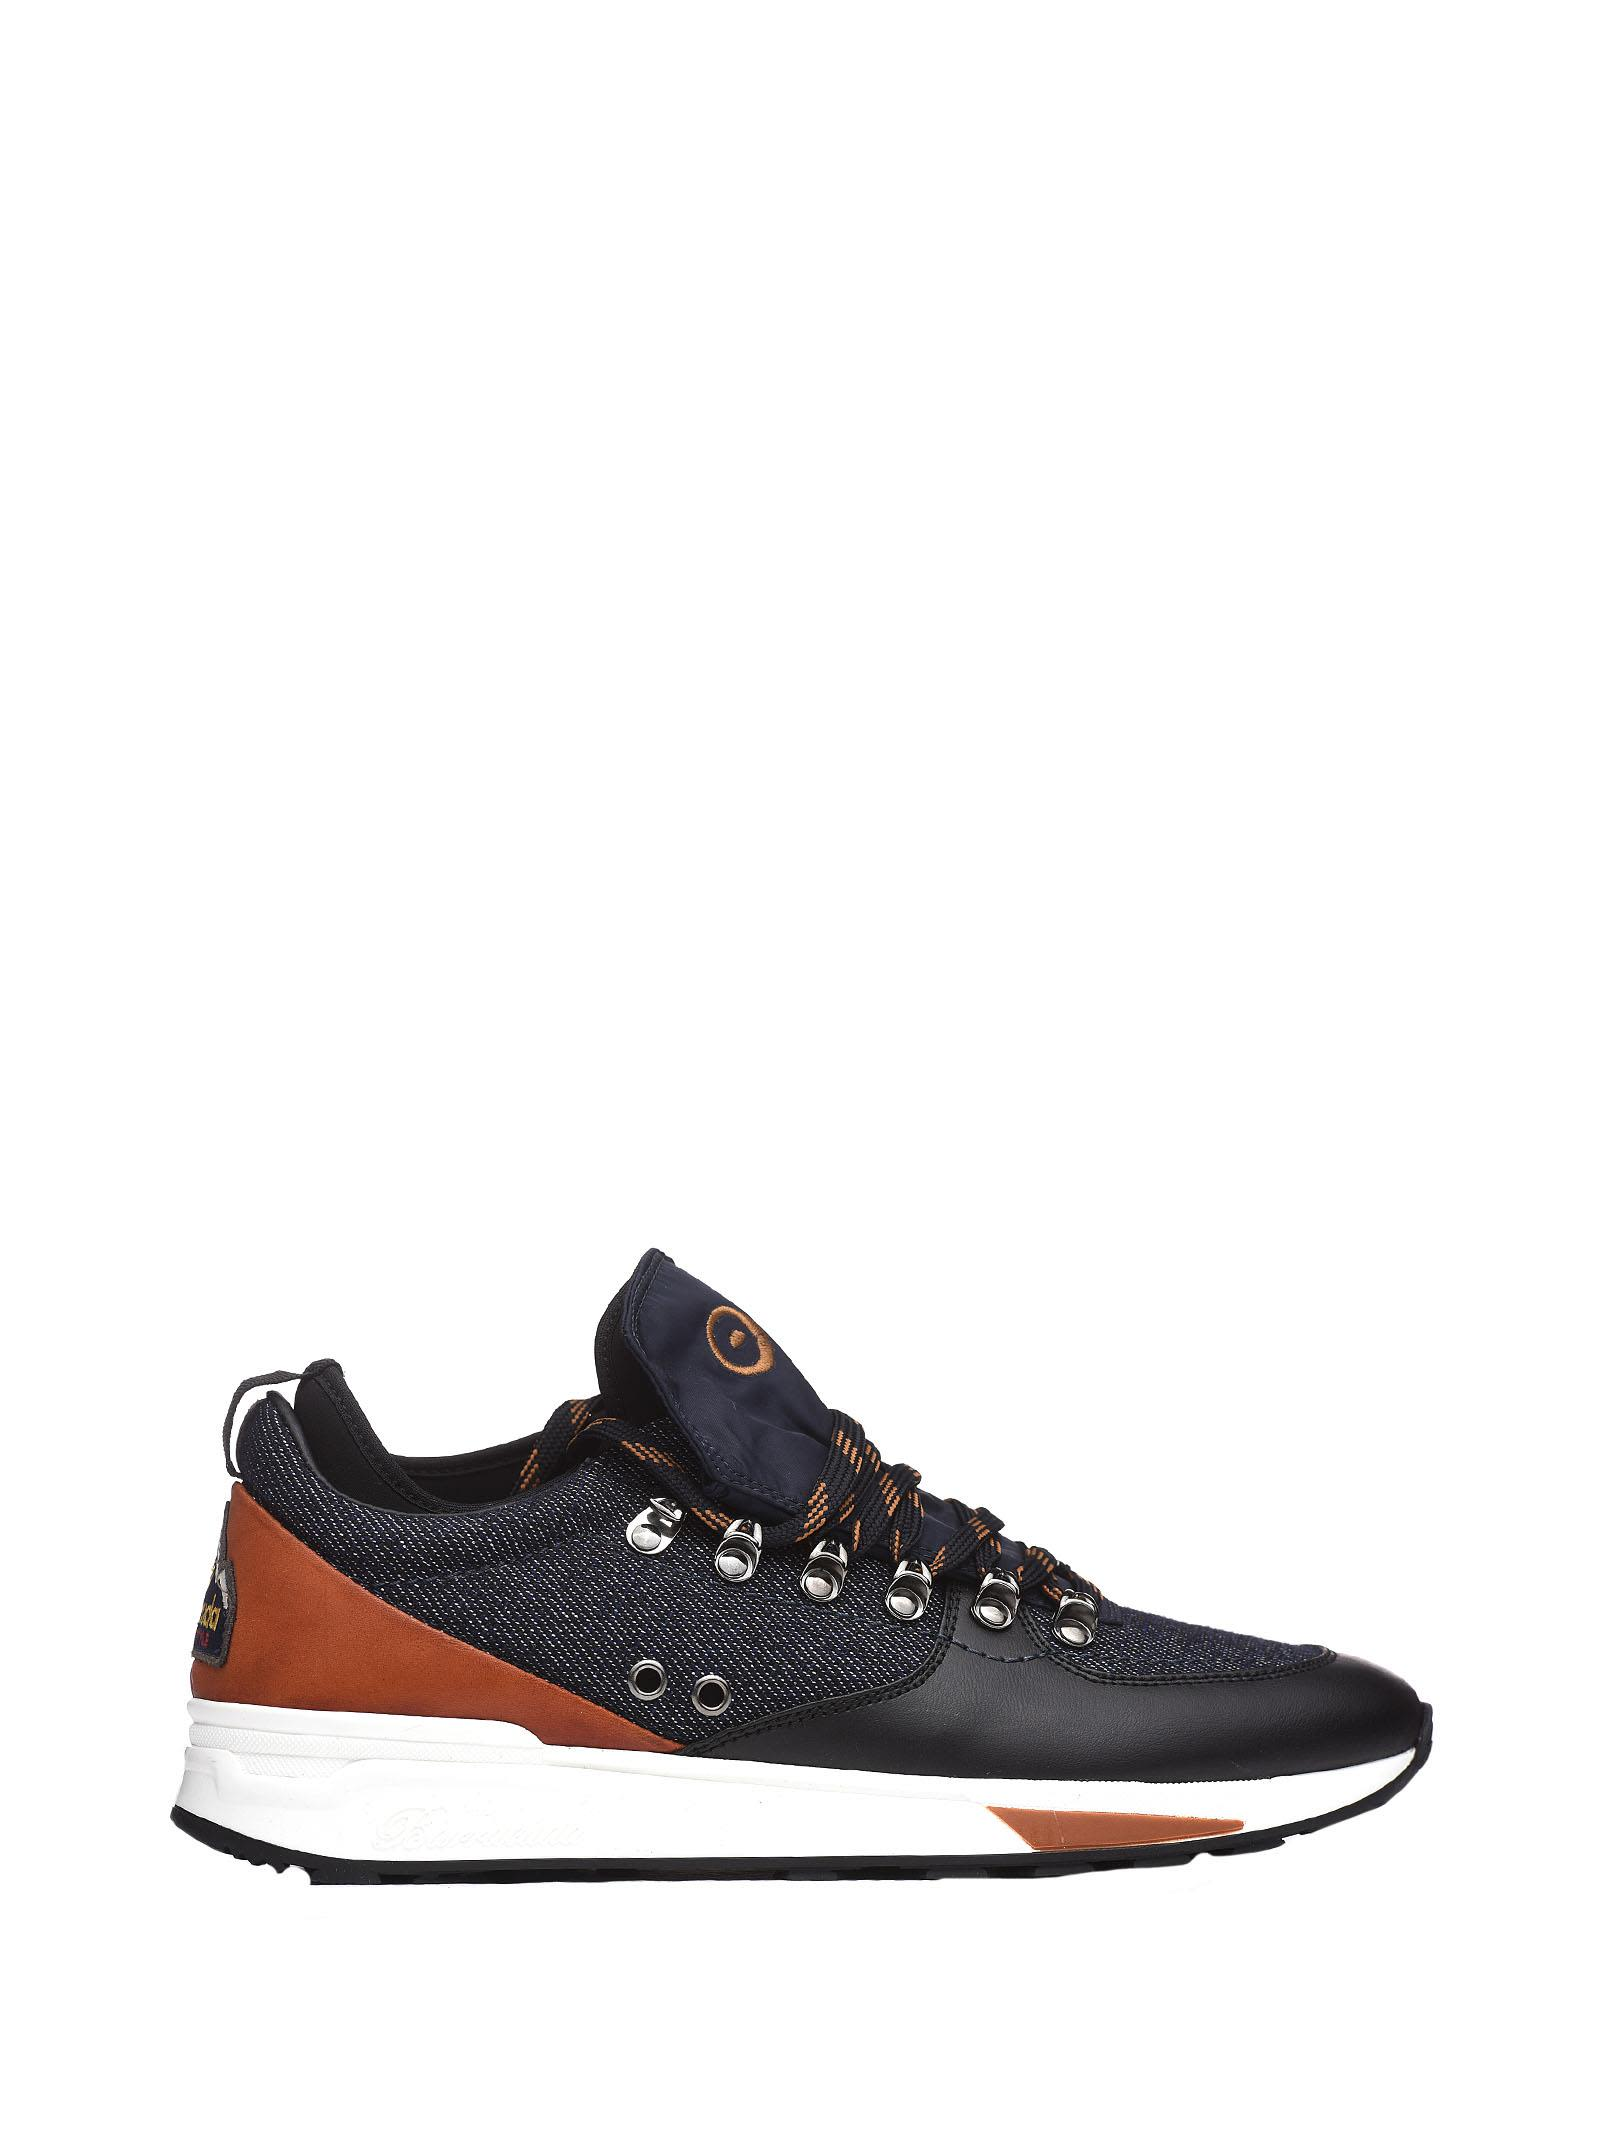 BARRACUDA Blue Sneakers With Hook in Blu Cuoio